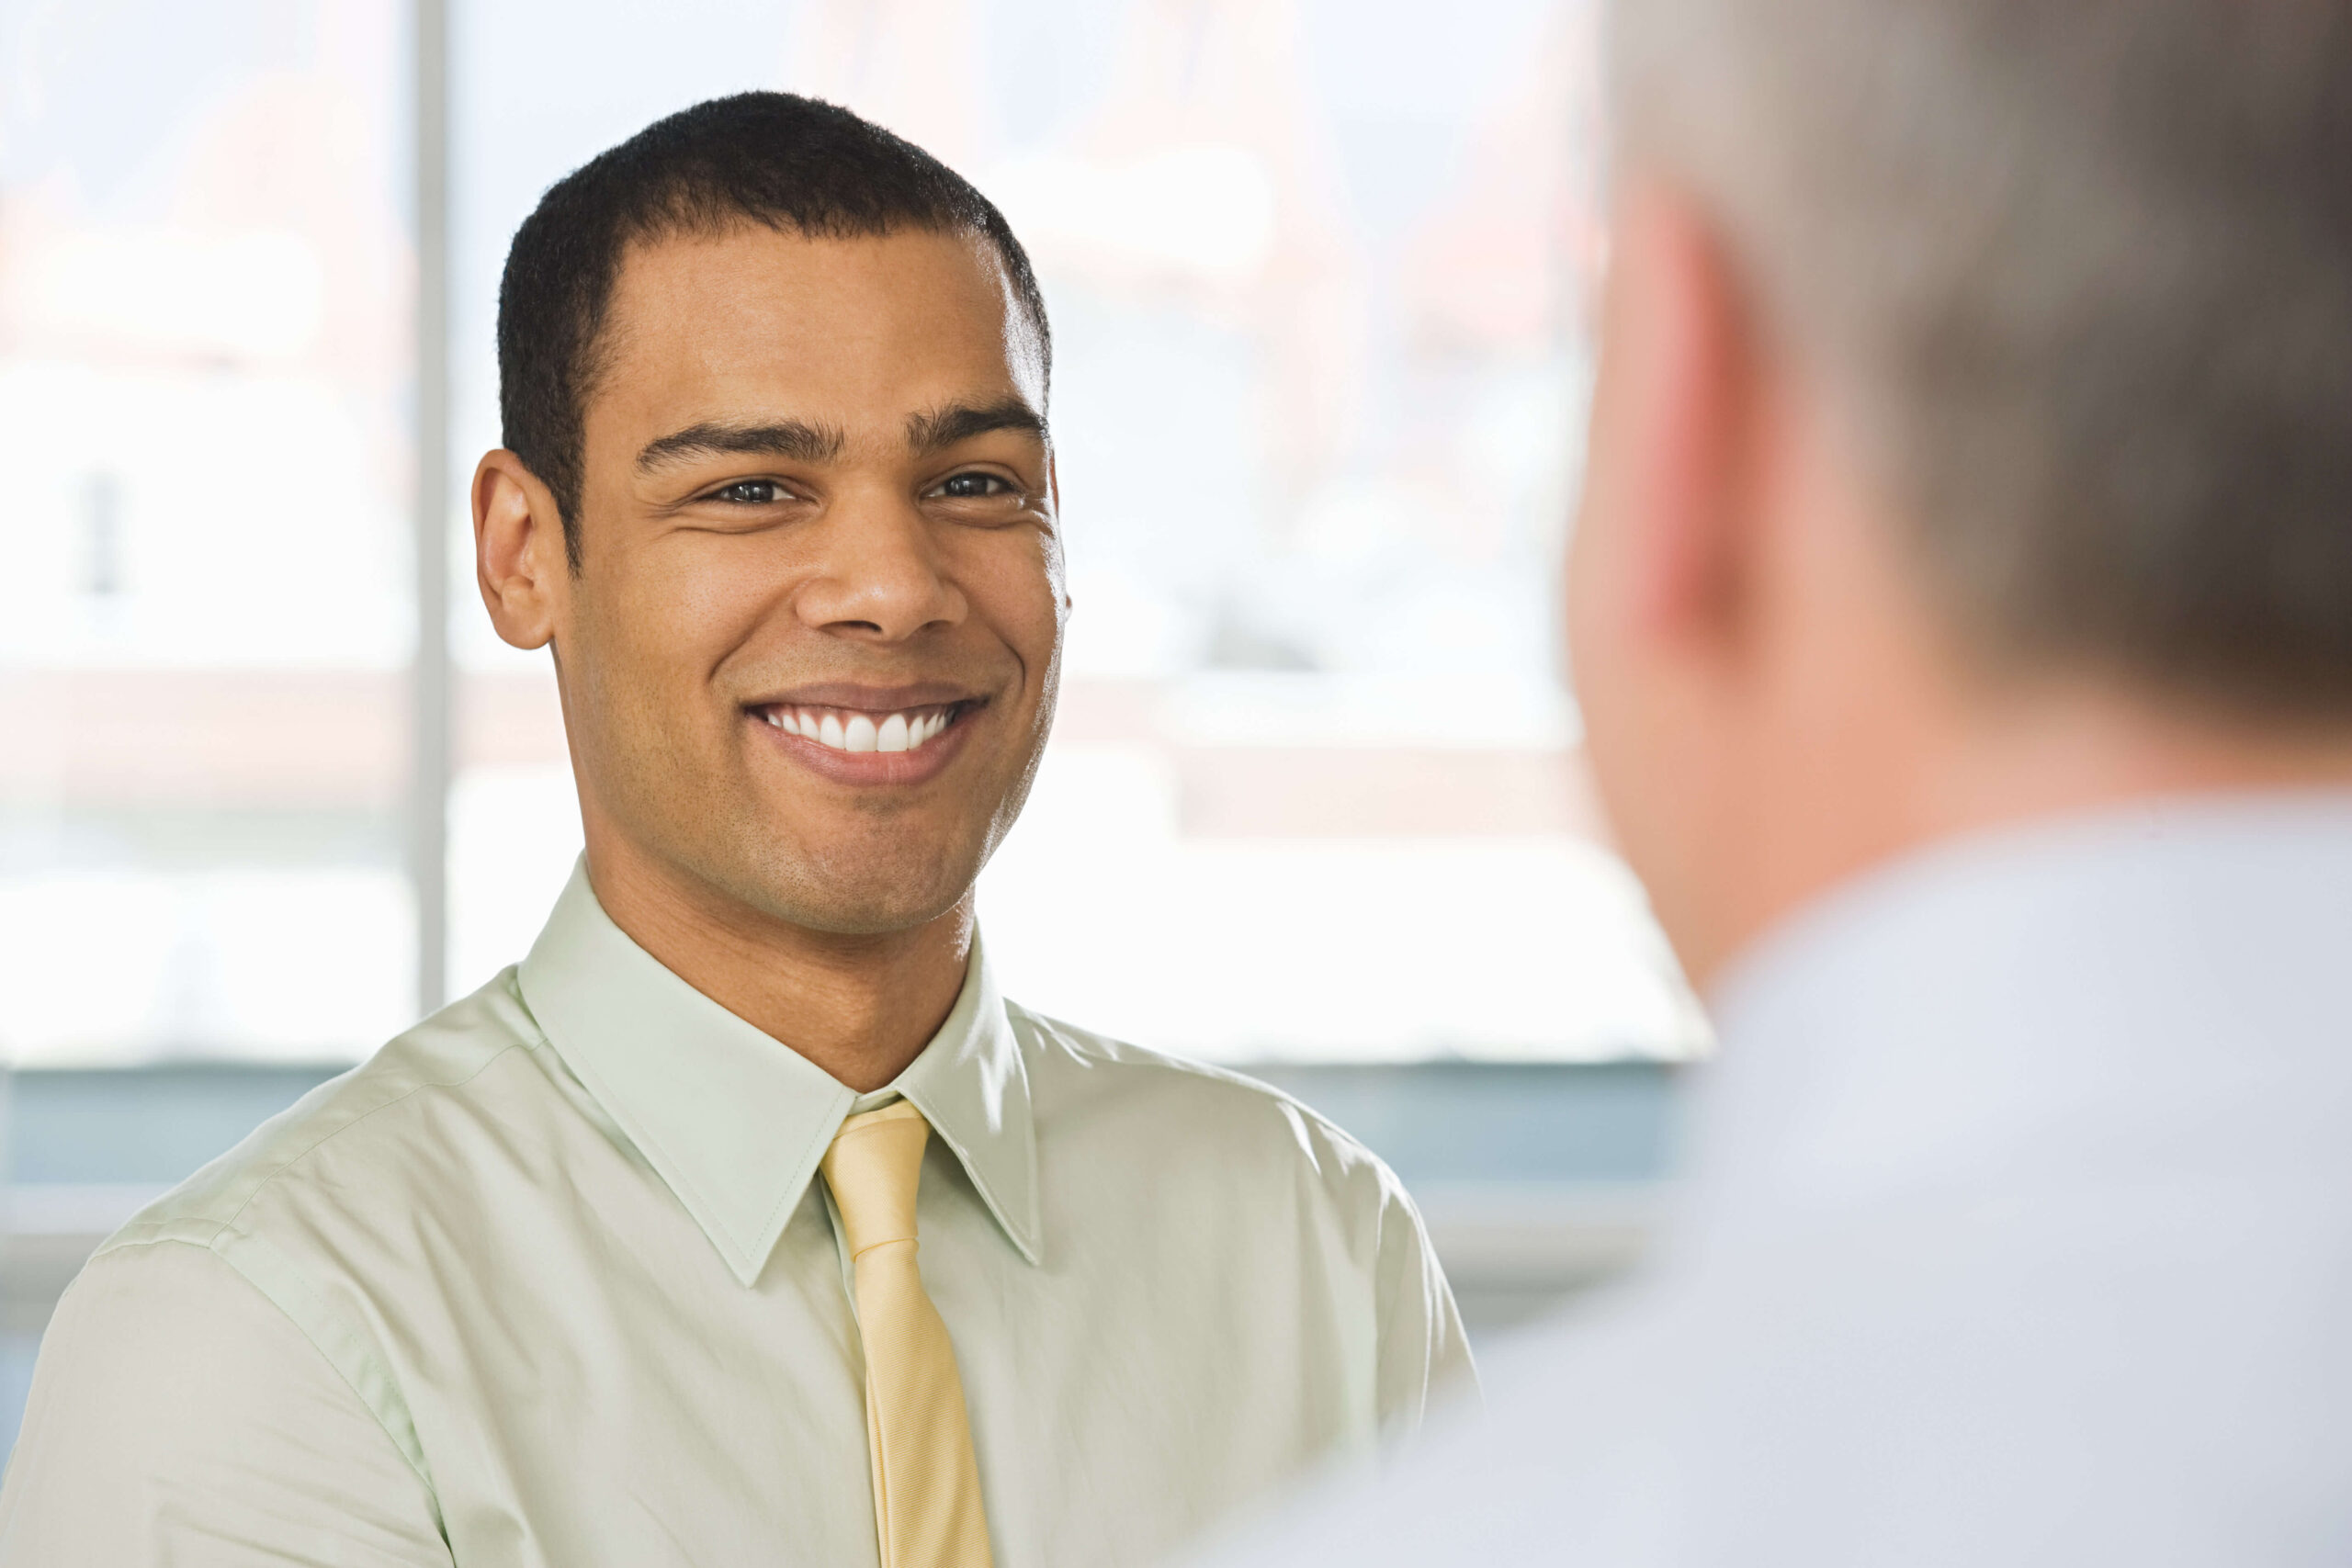 7 Things to Keep in Mind for Job Interviews